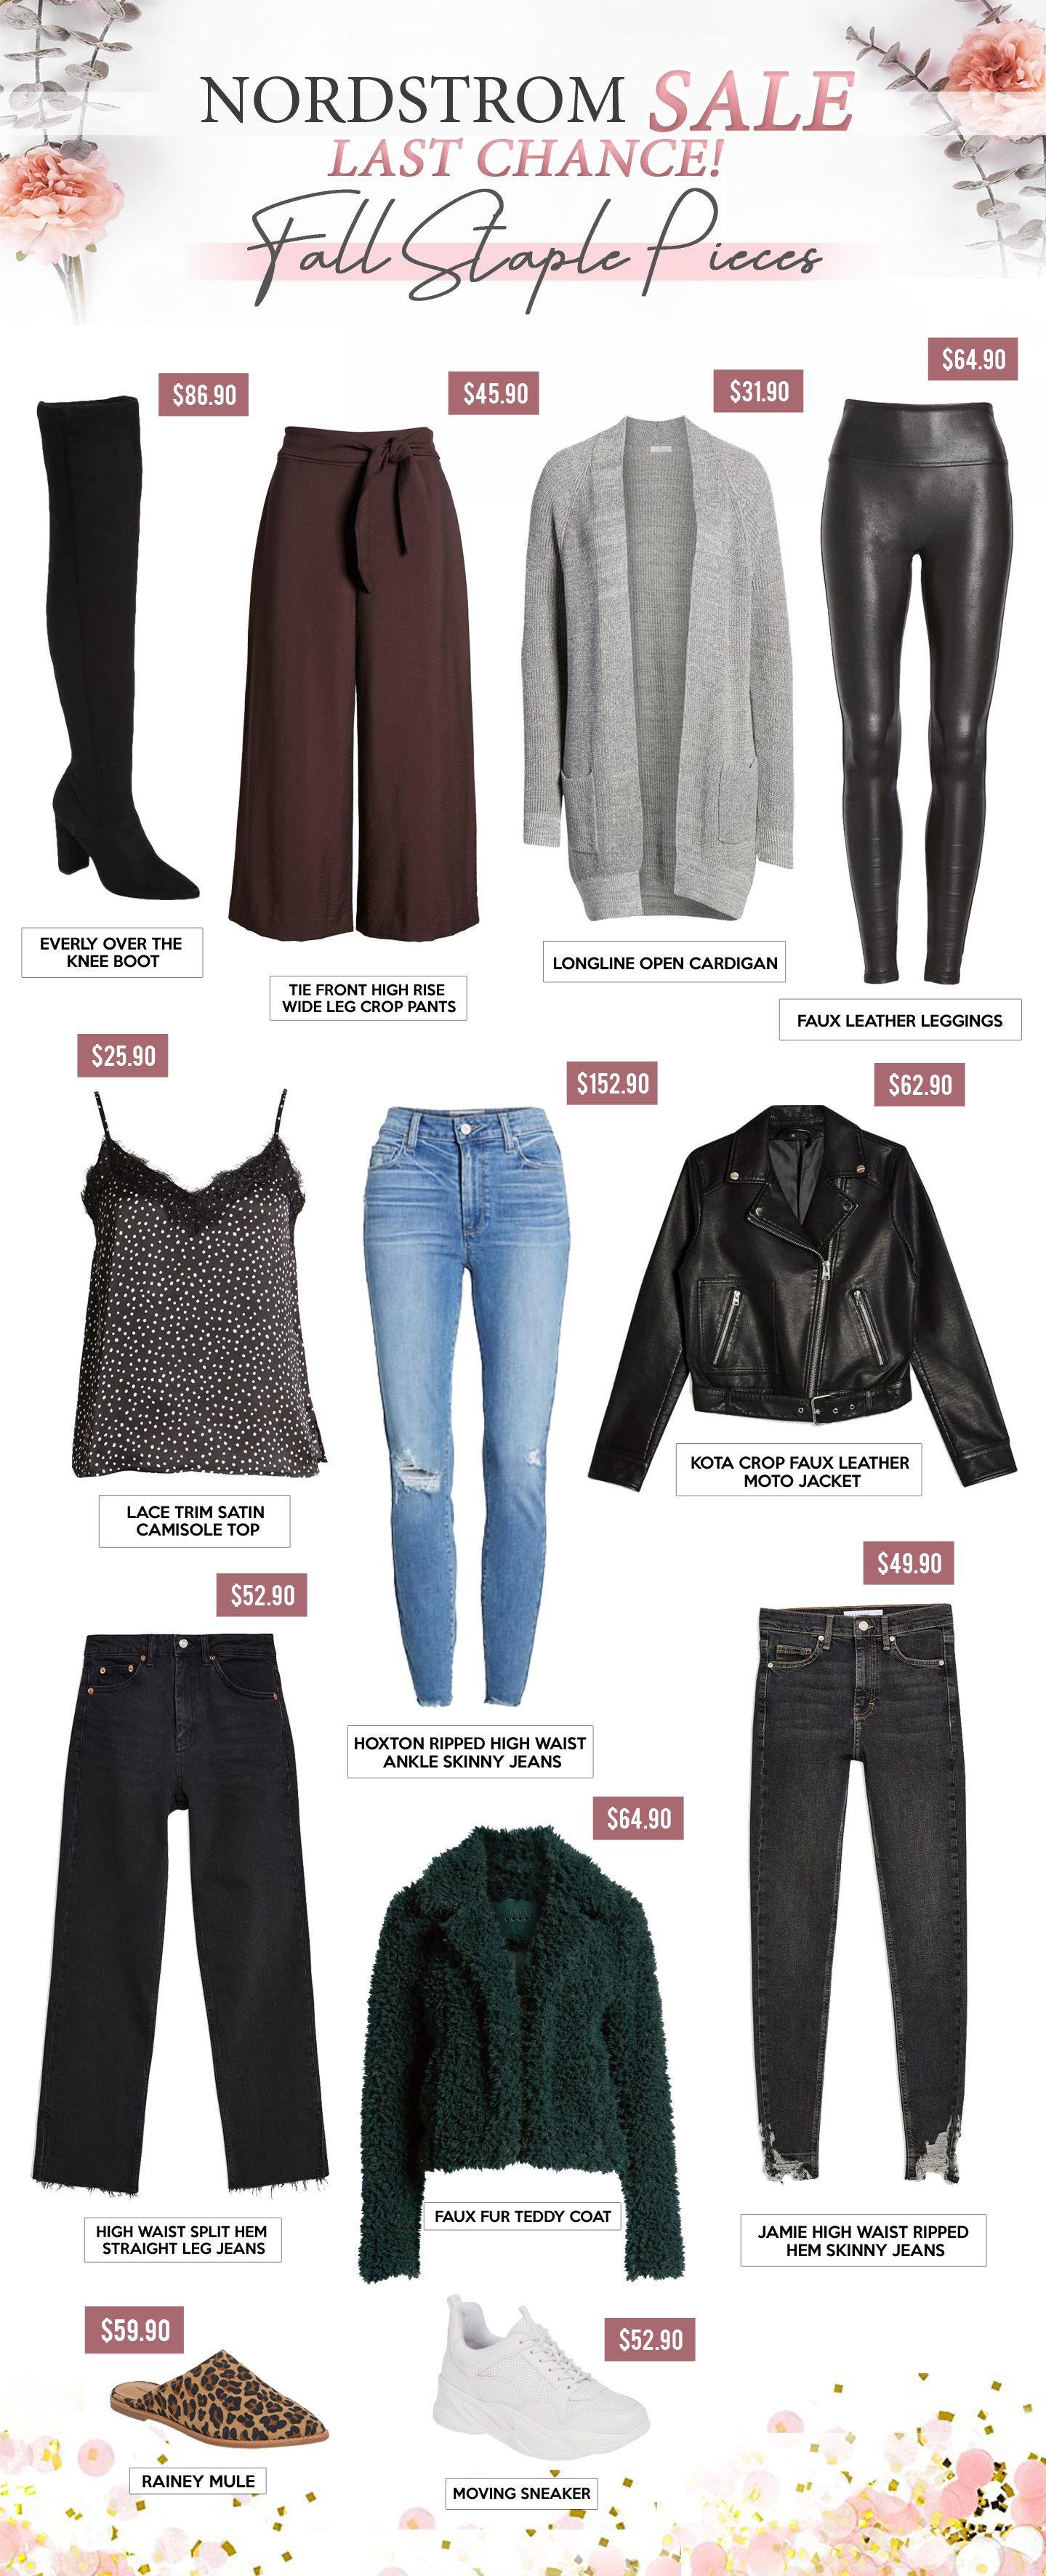 Gift Guides - FALL STAPLE PIECES - NORDSTROM SALE LAST CHANCE!